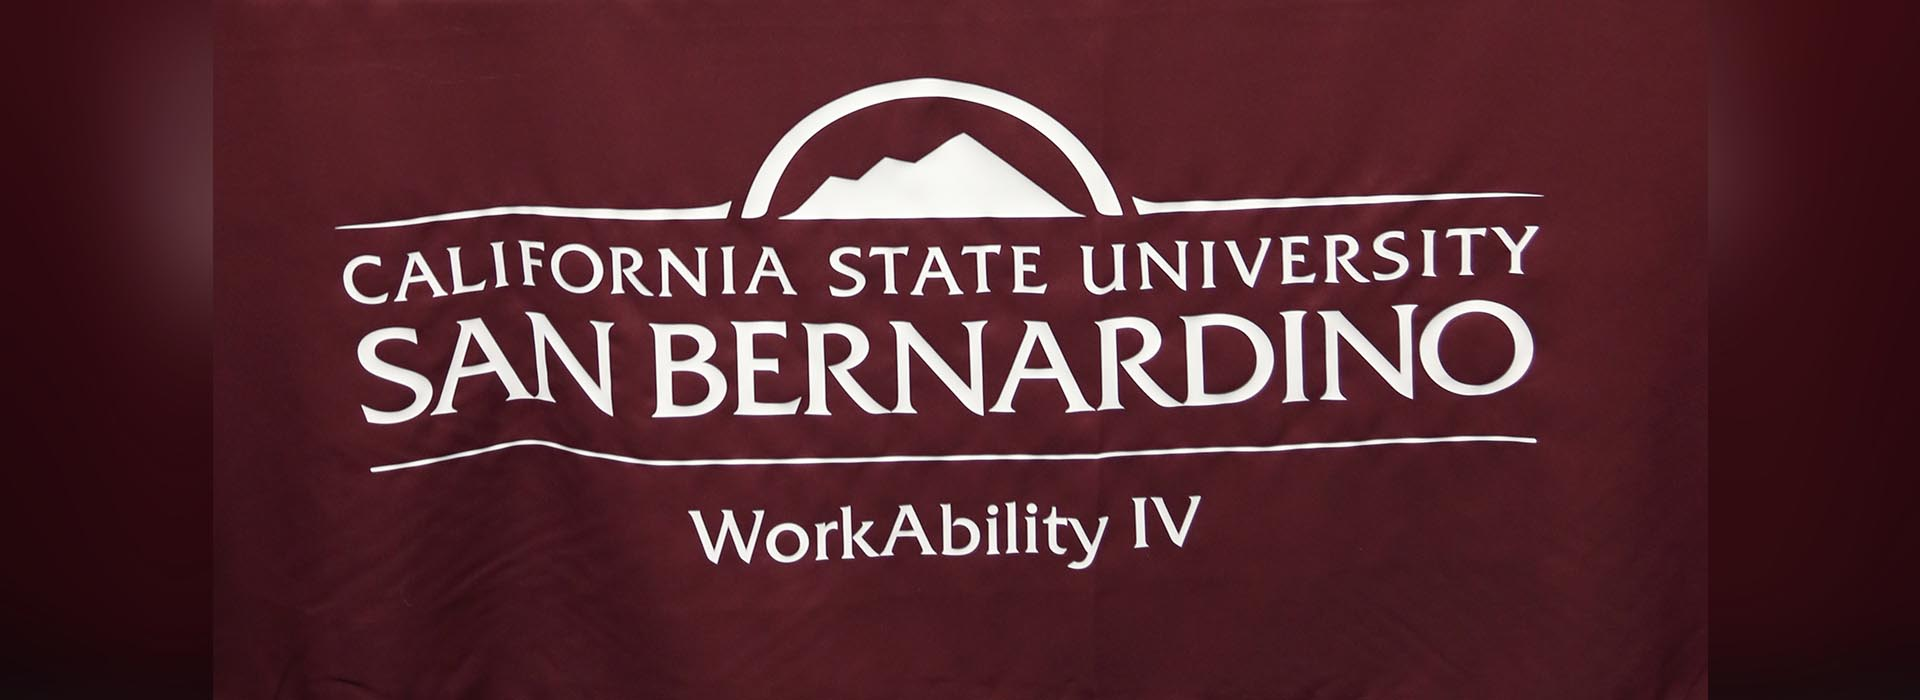 CSUSB's WorkAbility IV to host business and public administration panel discussion